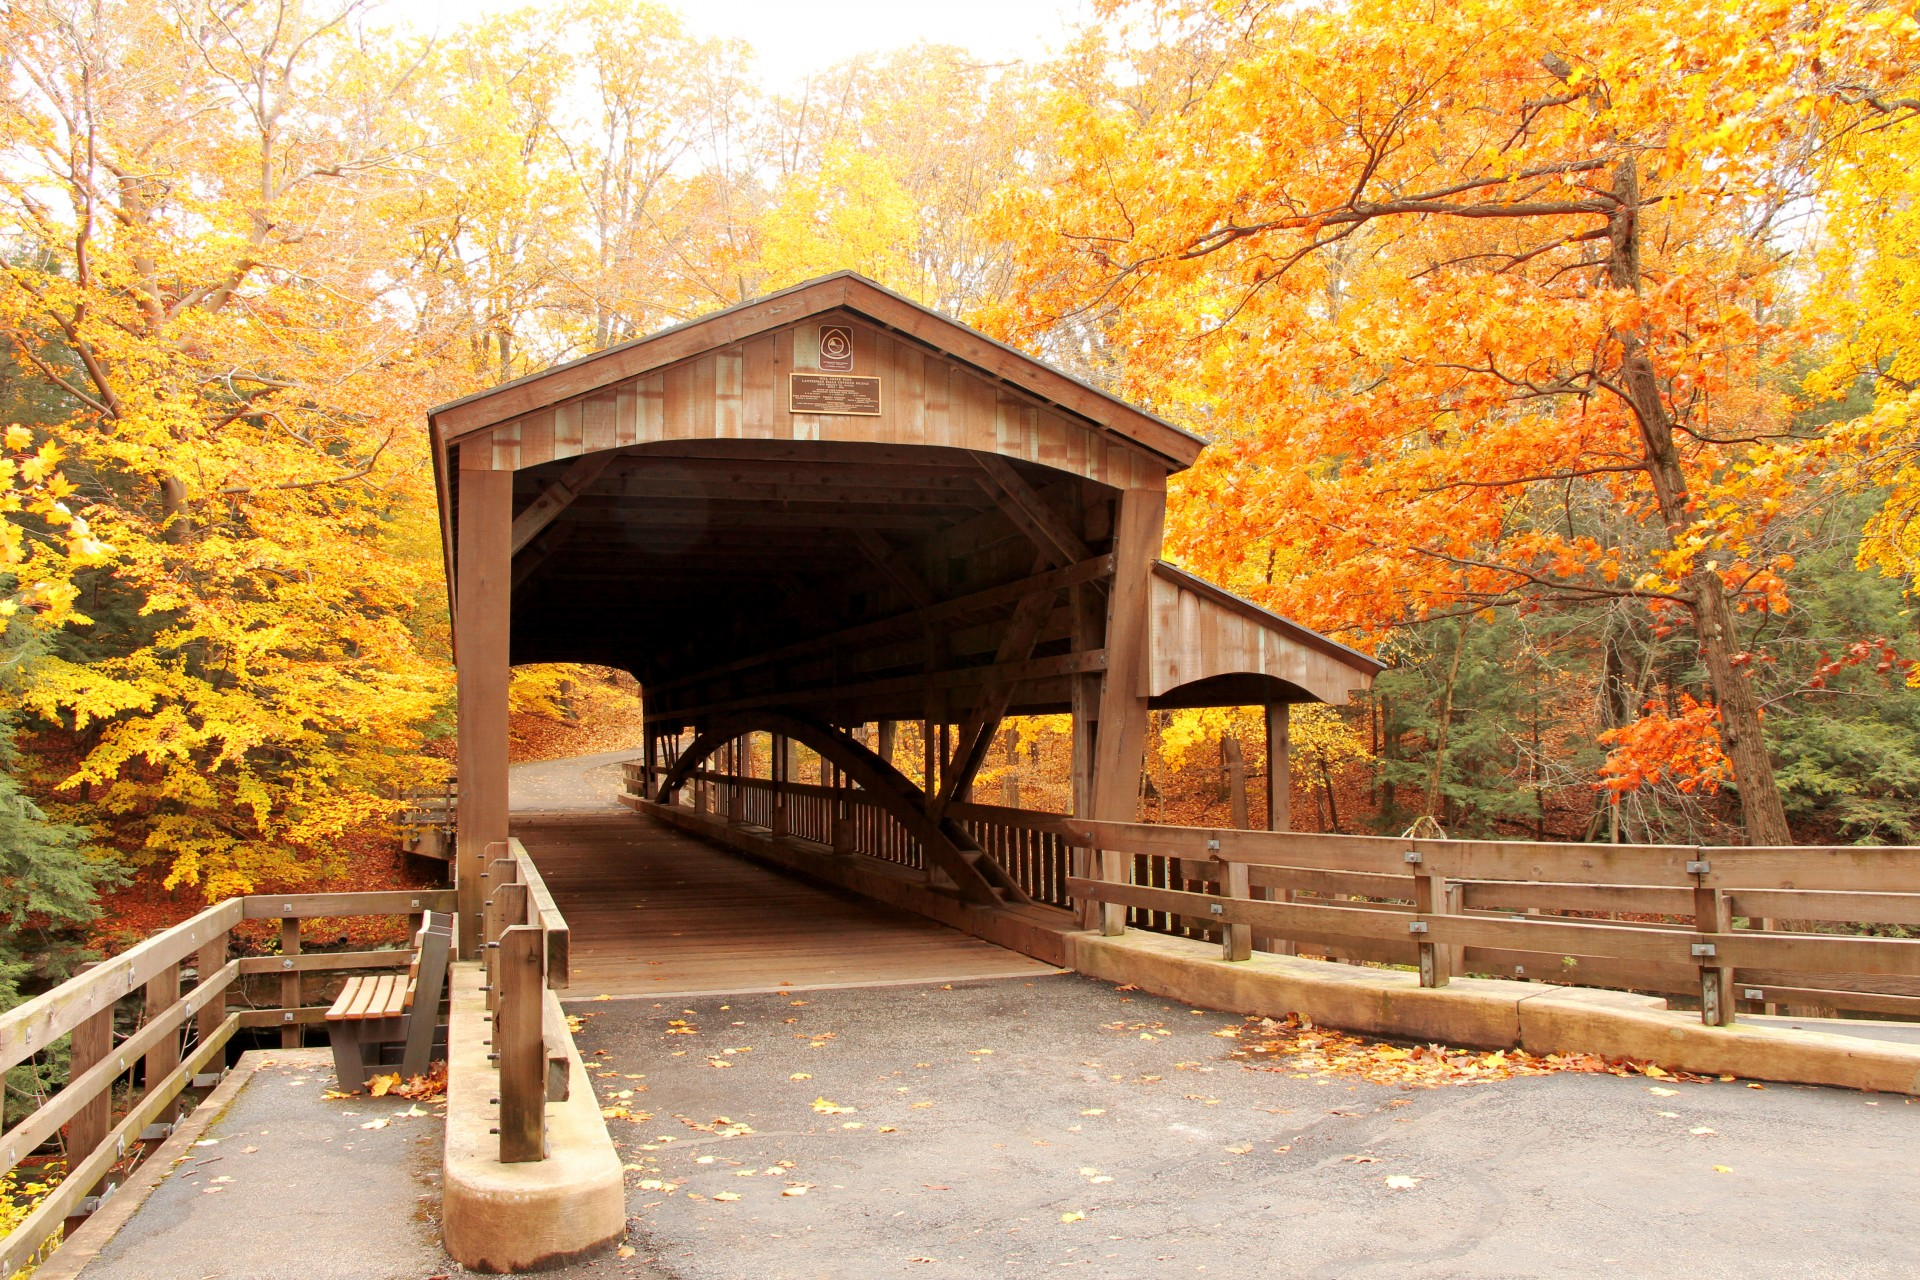 Fall Leaves Road Wallpaper Covered Bridge In Forest 2 Free Stock Photo Public